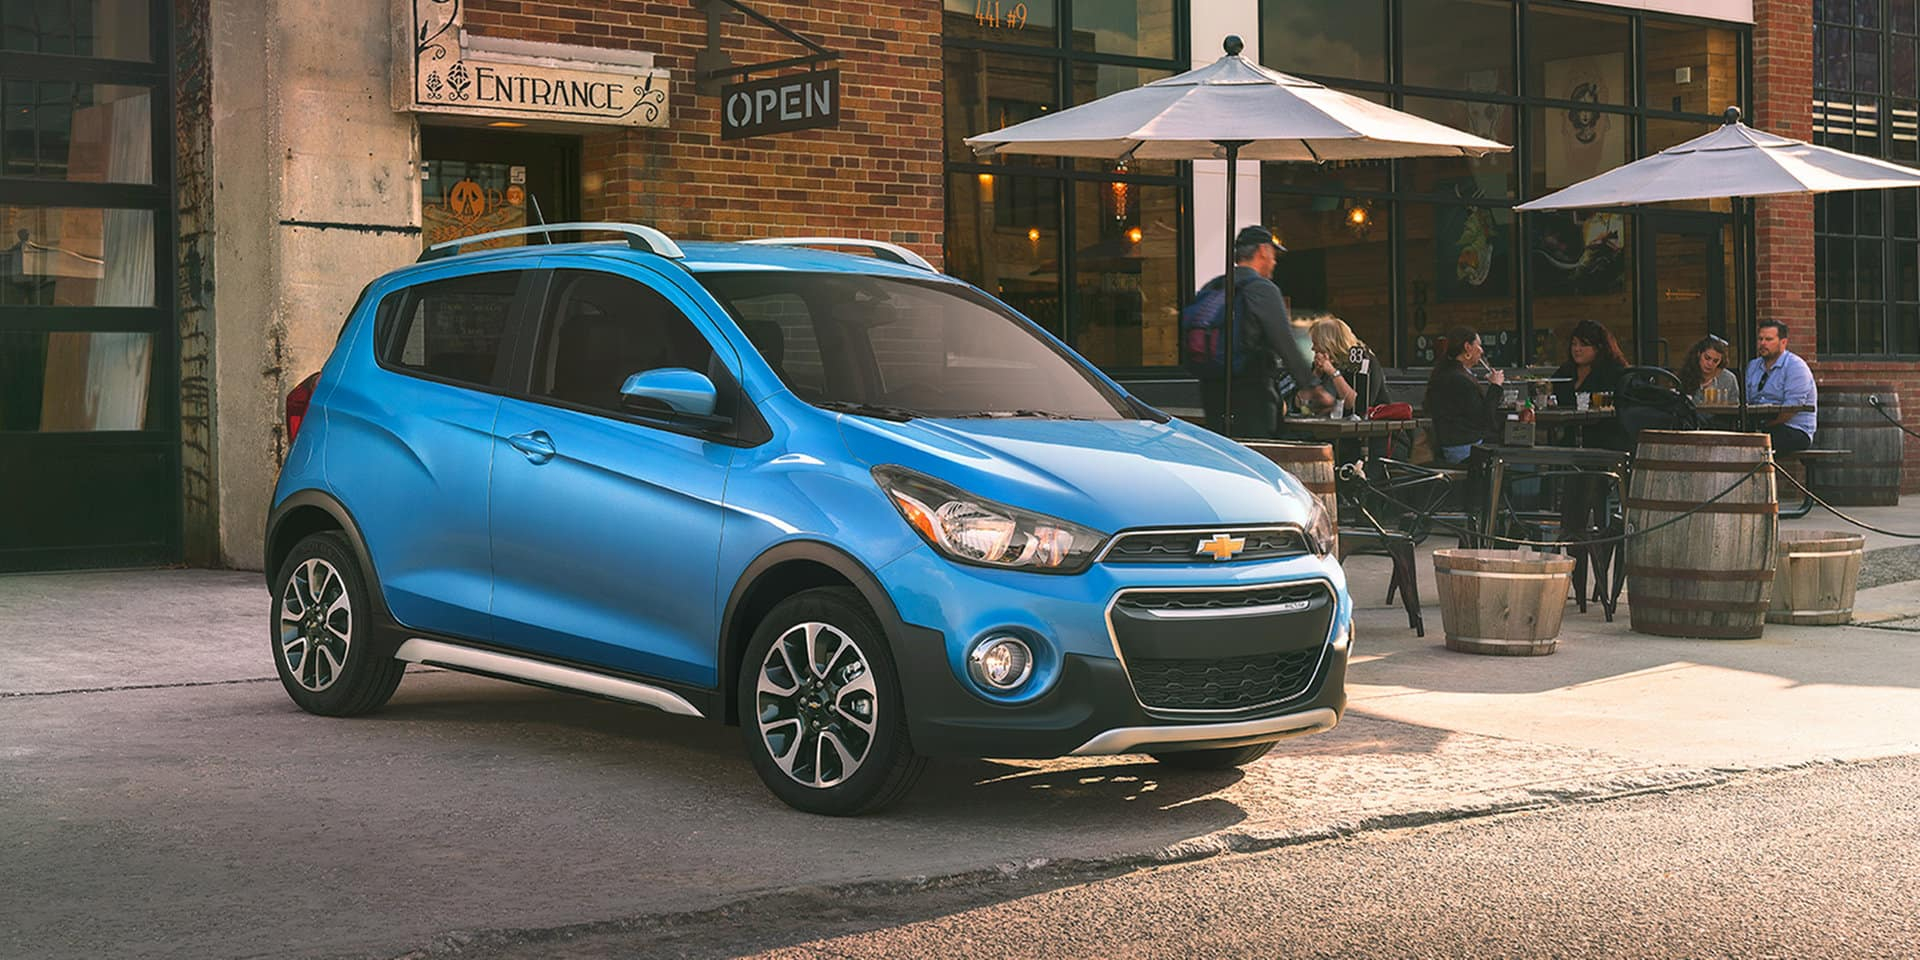 Hop Into The Exciting 2018 Chevrolet Spark - Sunrise Chevrolet 2021 Chevy Spark Performance Parts, Pictures, Rims